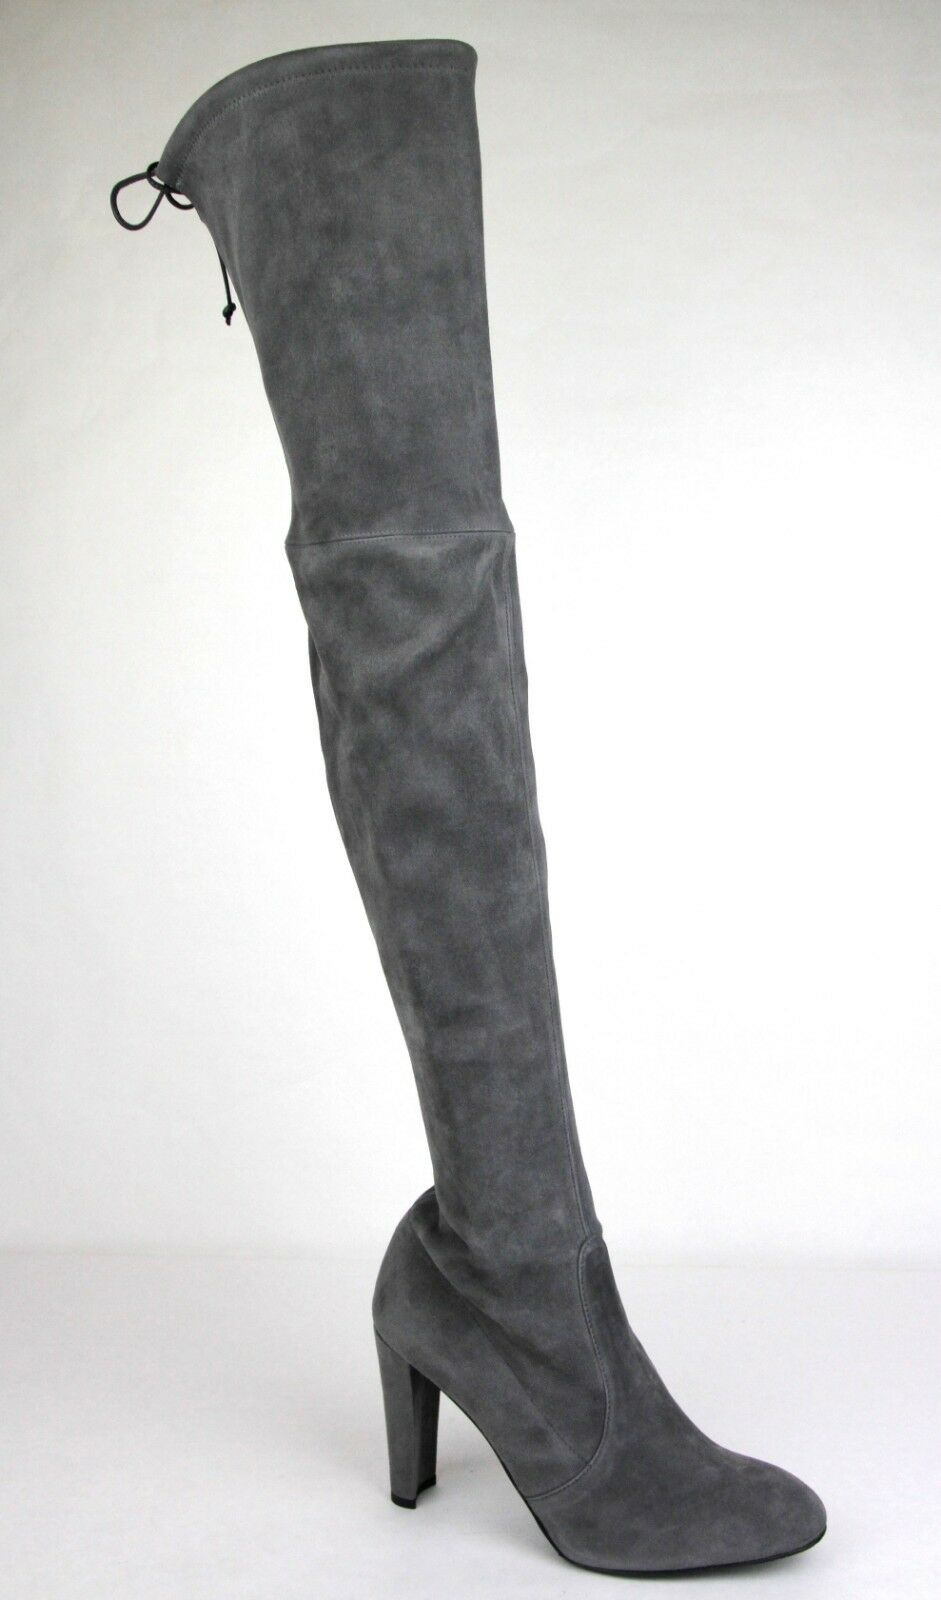 798 New Stuart Weitzman Charcoal Slate Suede Highland Over-The-Knee Stiefel 11 M